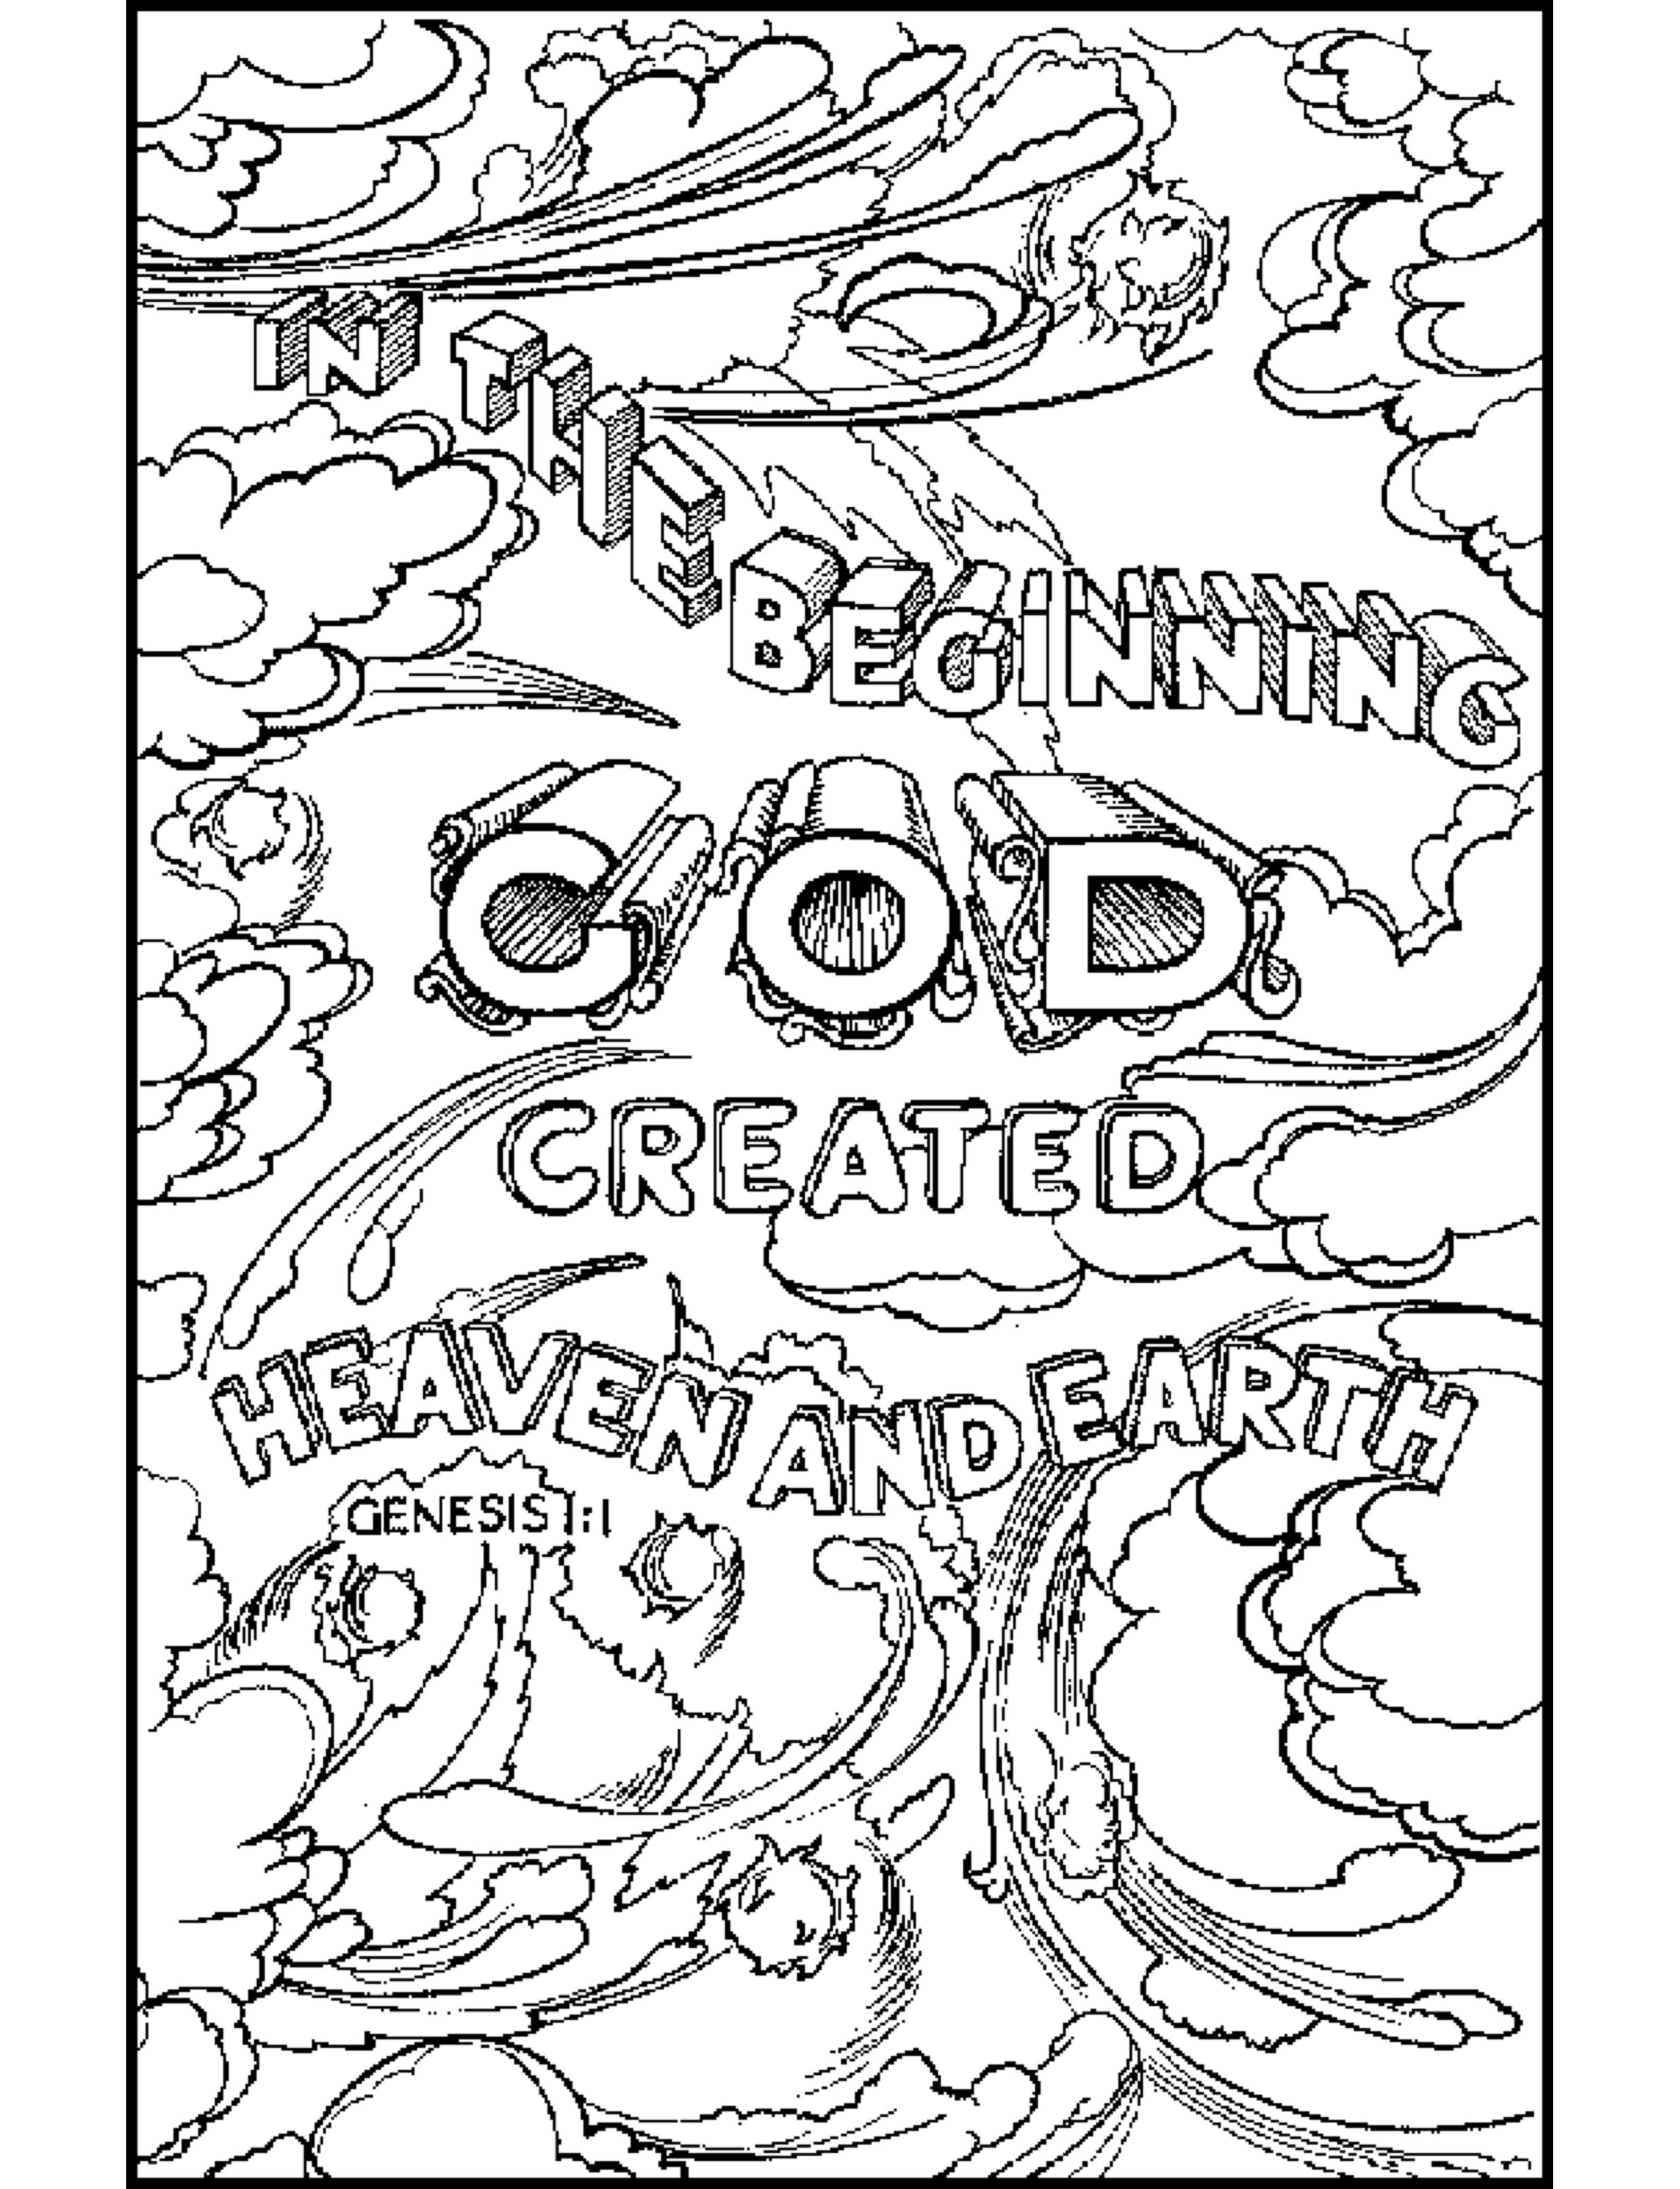 bible coloring pages - abda acts art publishing coloring pages